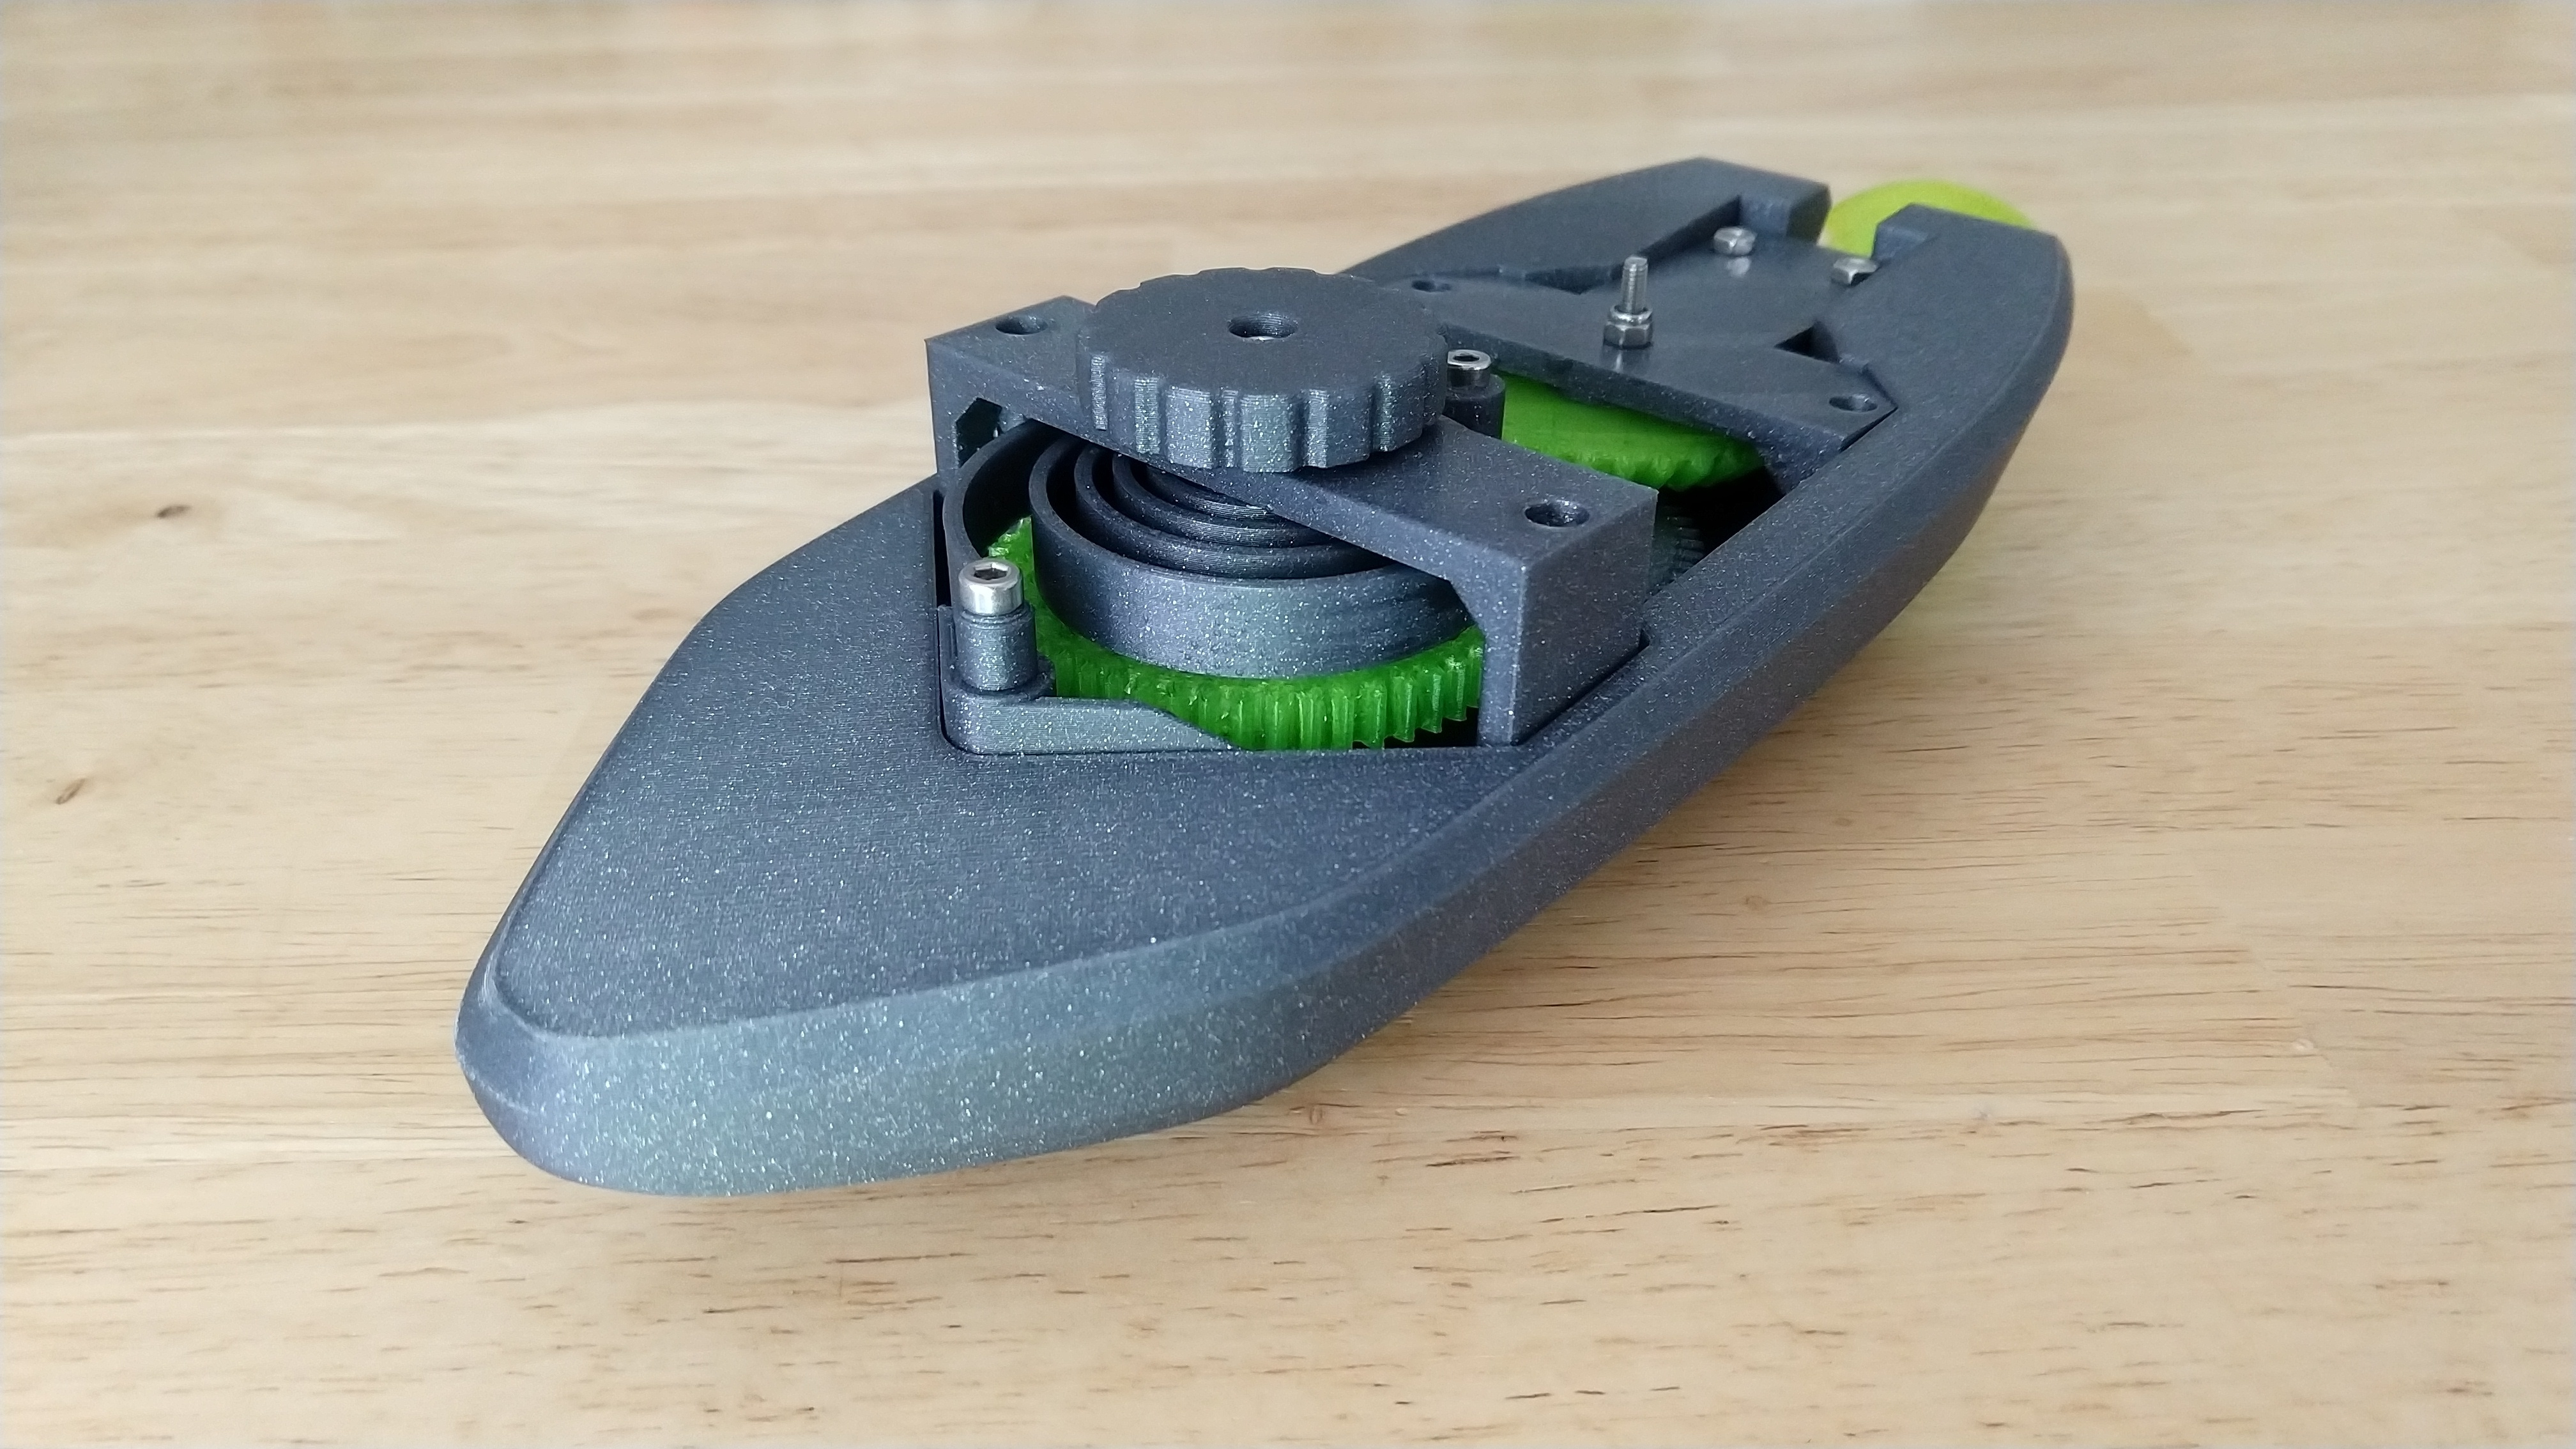 IMG_20190318_164231218.jpg Download free STL file wind-up Bathtub Boat V4 - Badewannen Boot zum Aufziehen - Funktionsfähig • Model to 3D print, GreenDot